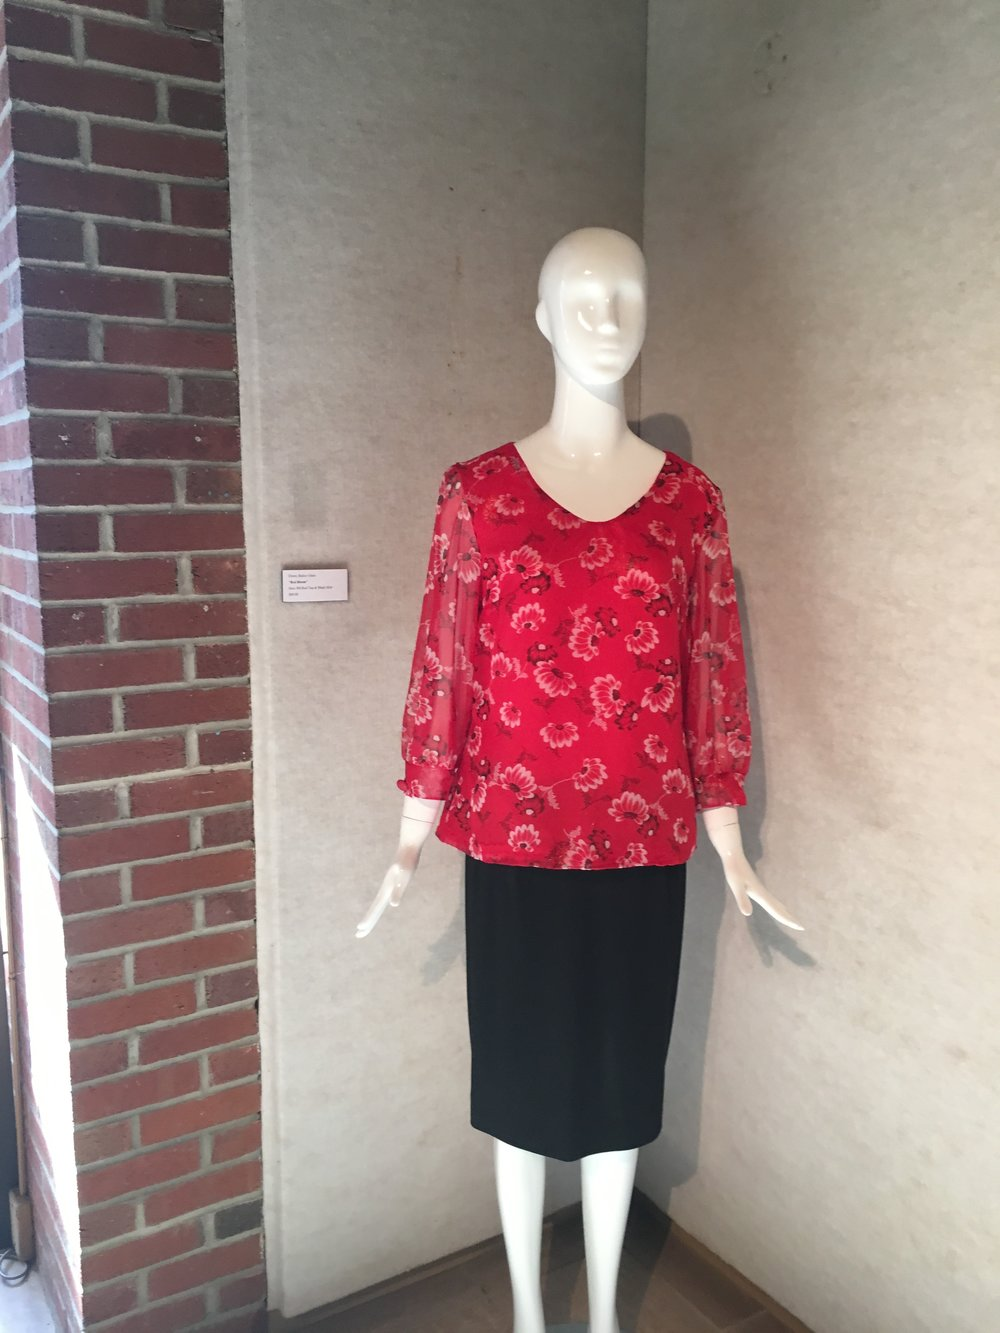 Fashion by: Ebony (Bailey) Glass right at the entrance of the gallery.